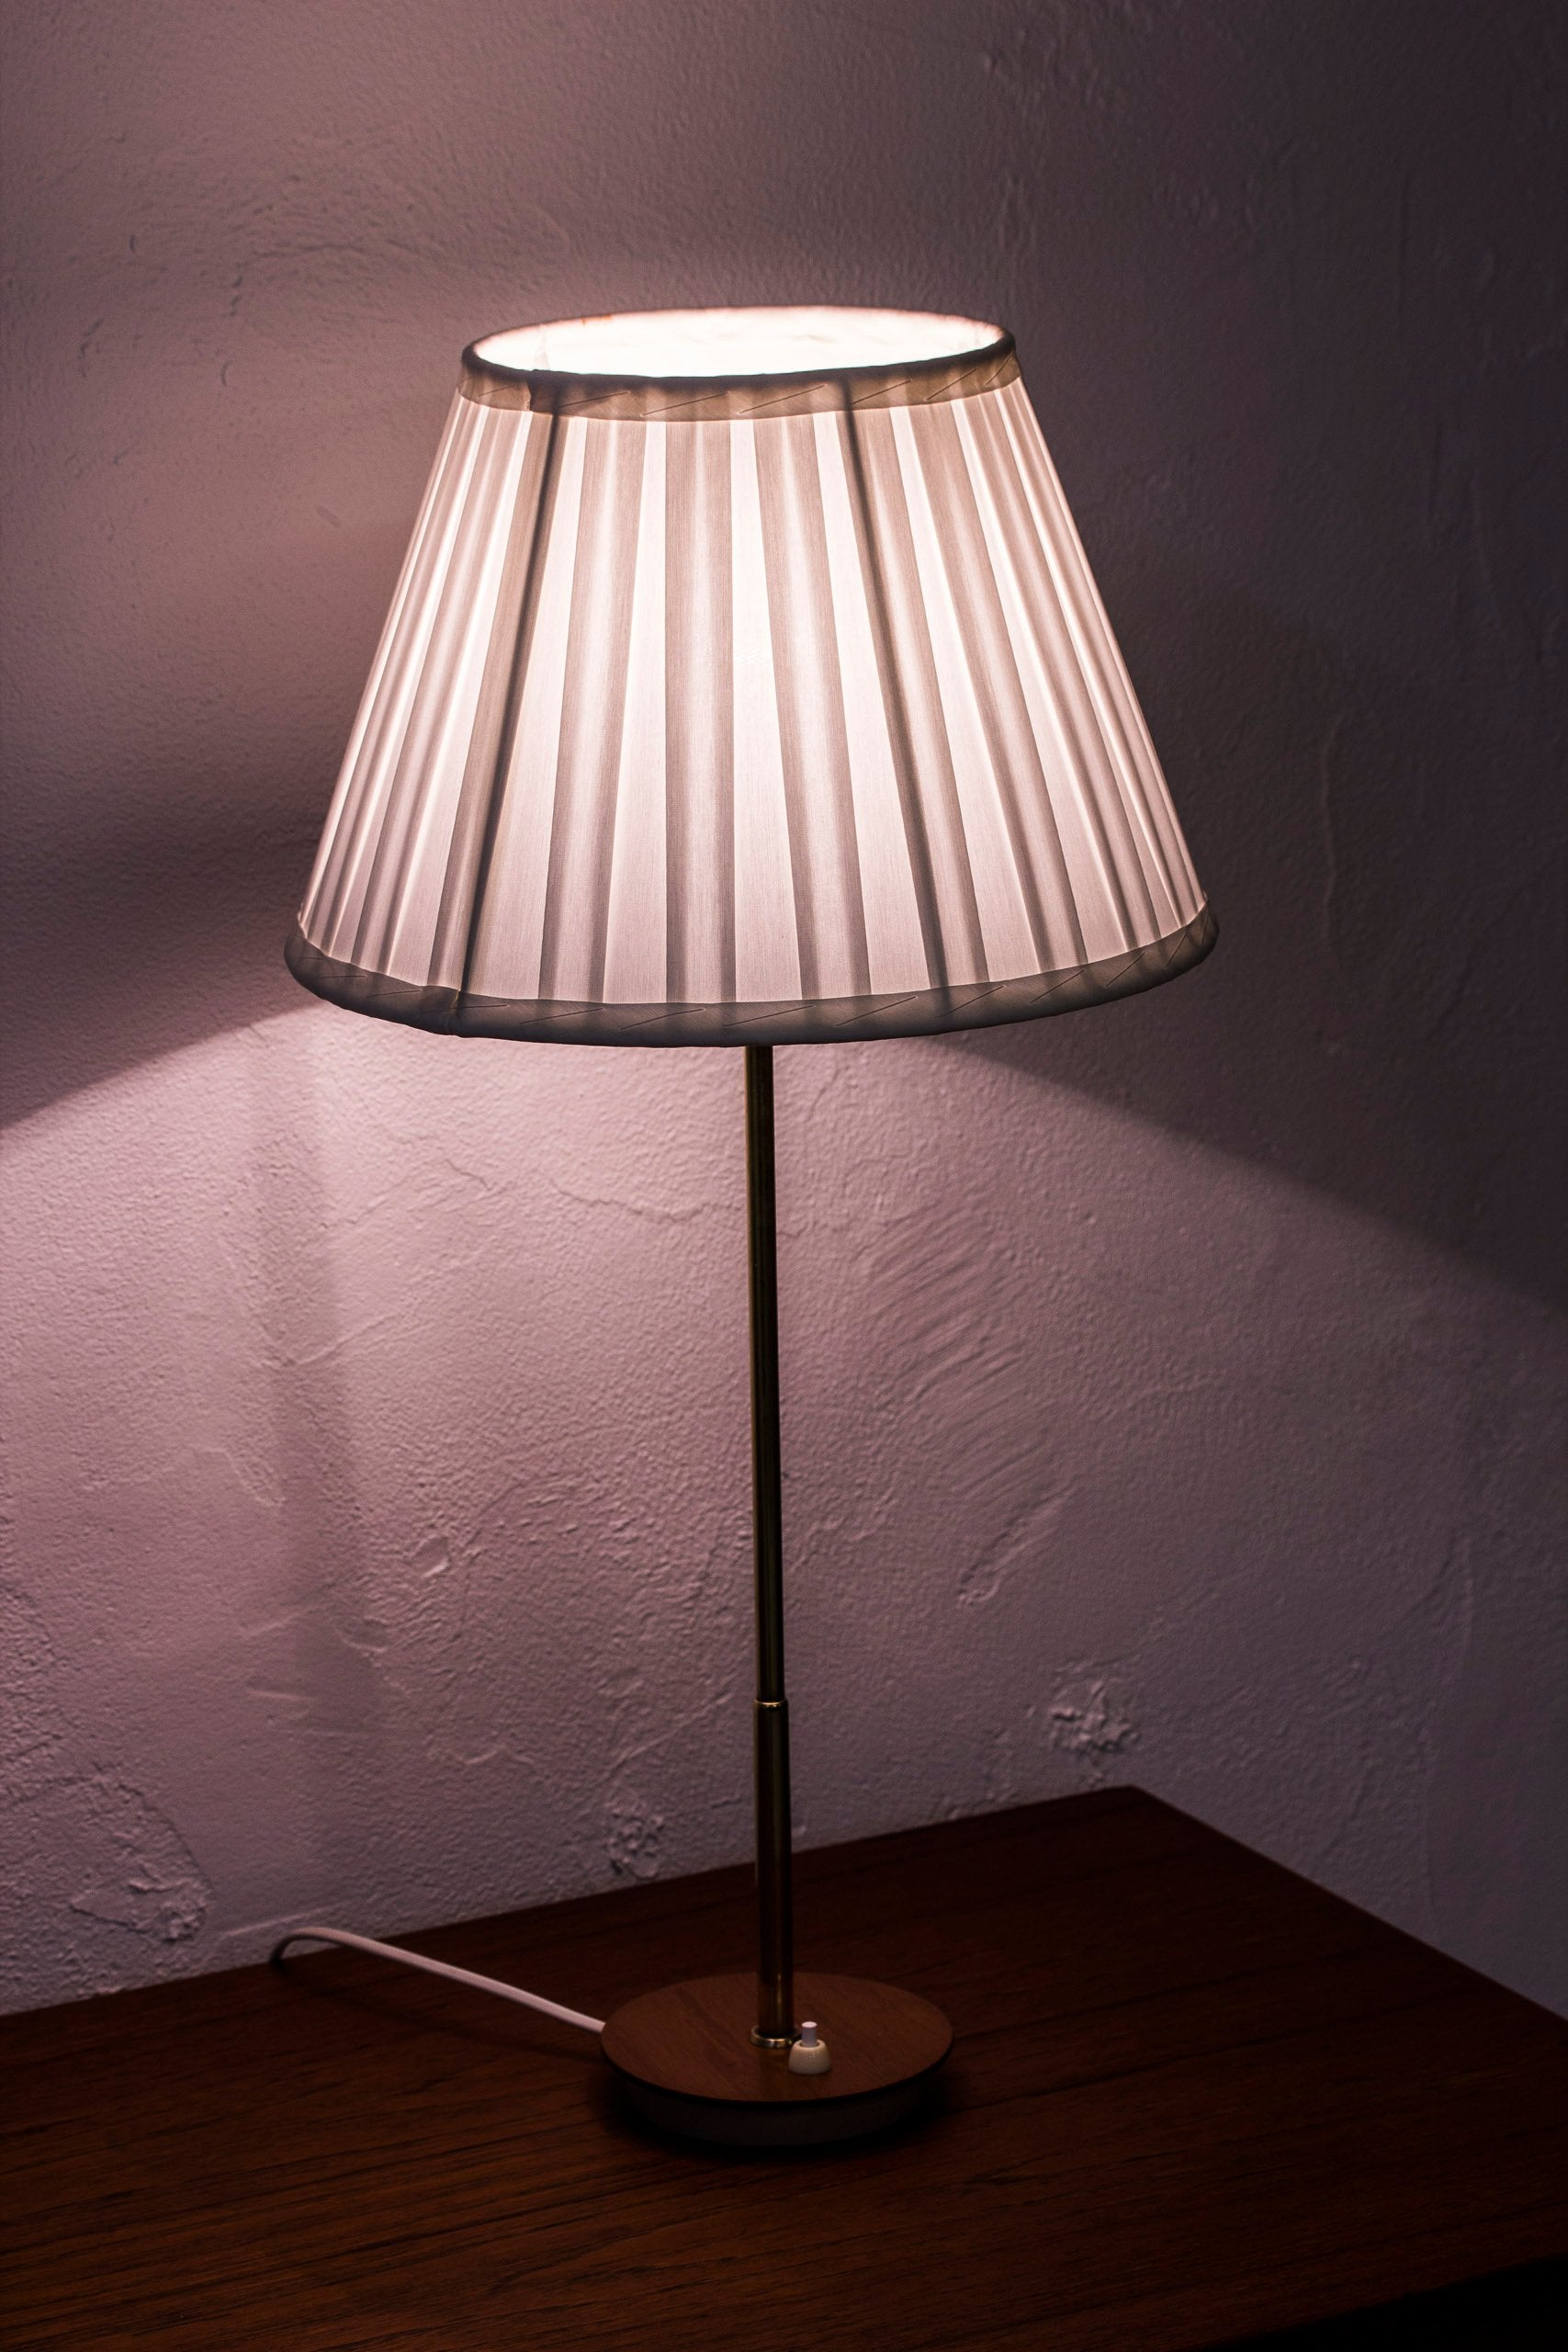 1940s table lamp by Bertil Brisborg